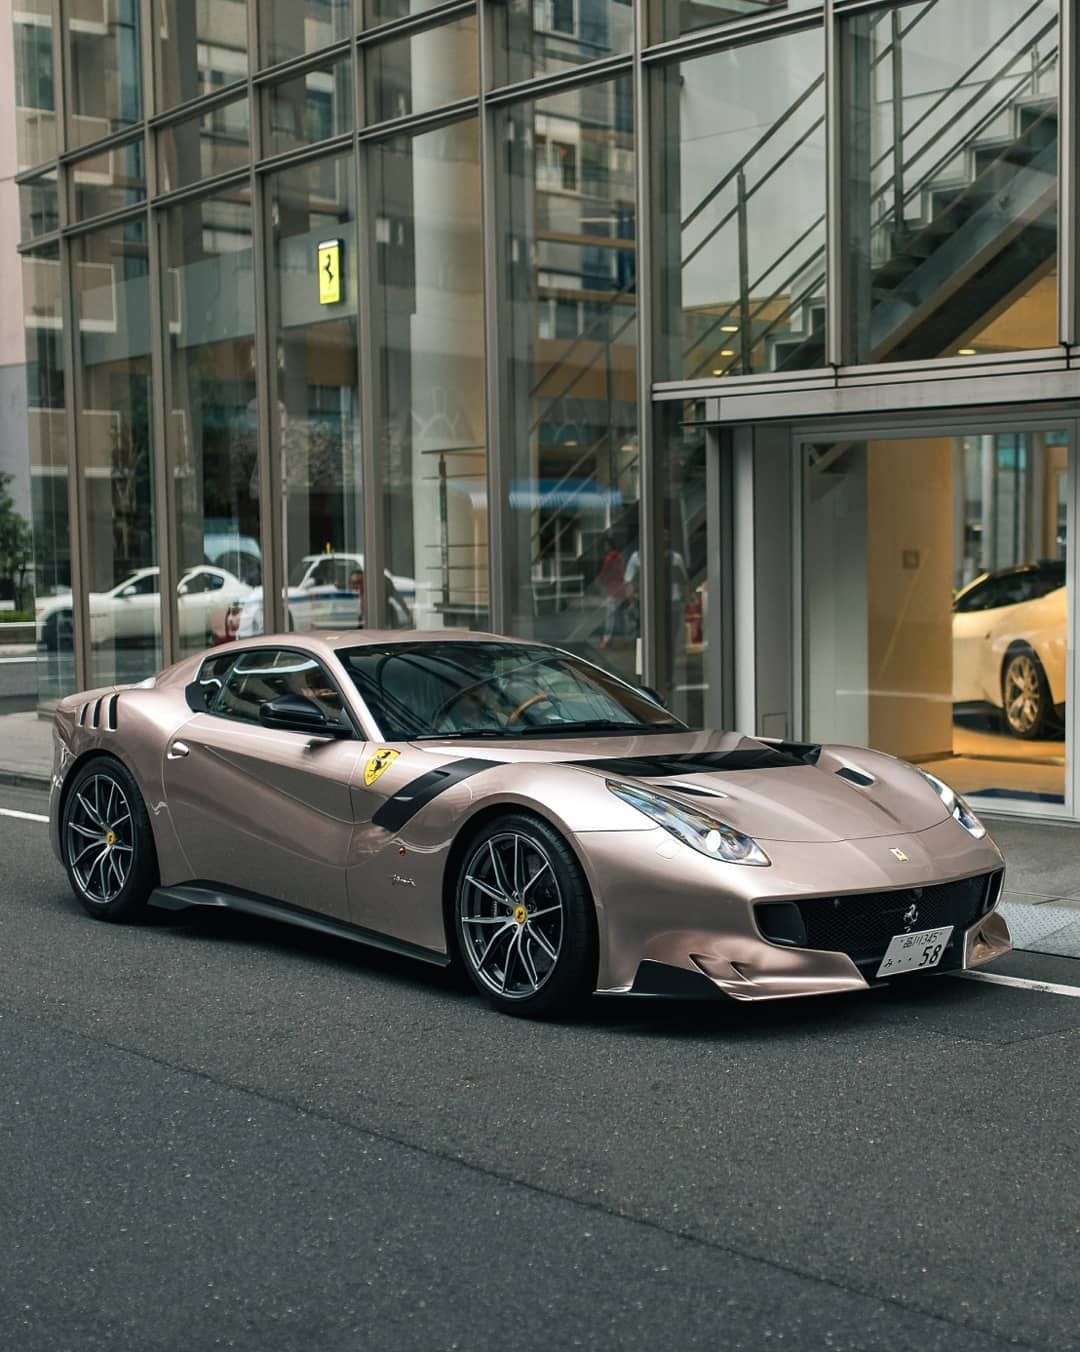 Ferrari F12tdf Wears Lamborghini S Bronzo Masaru Paintjob With Gusto Carscoops In 2020 Top Luxury Cars Ferrari Ferrari Mondial